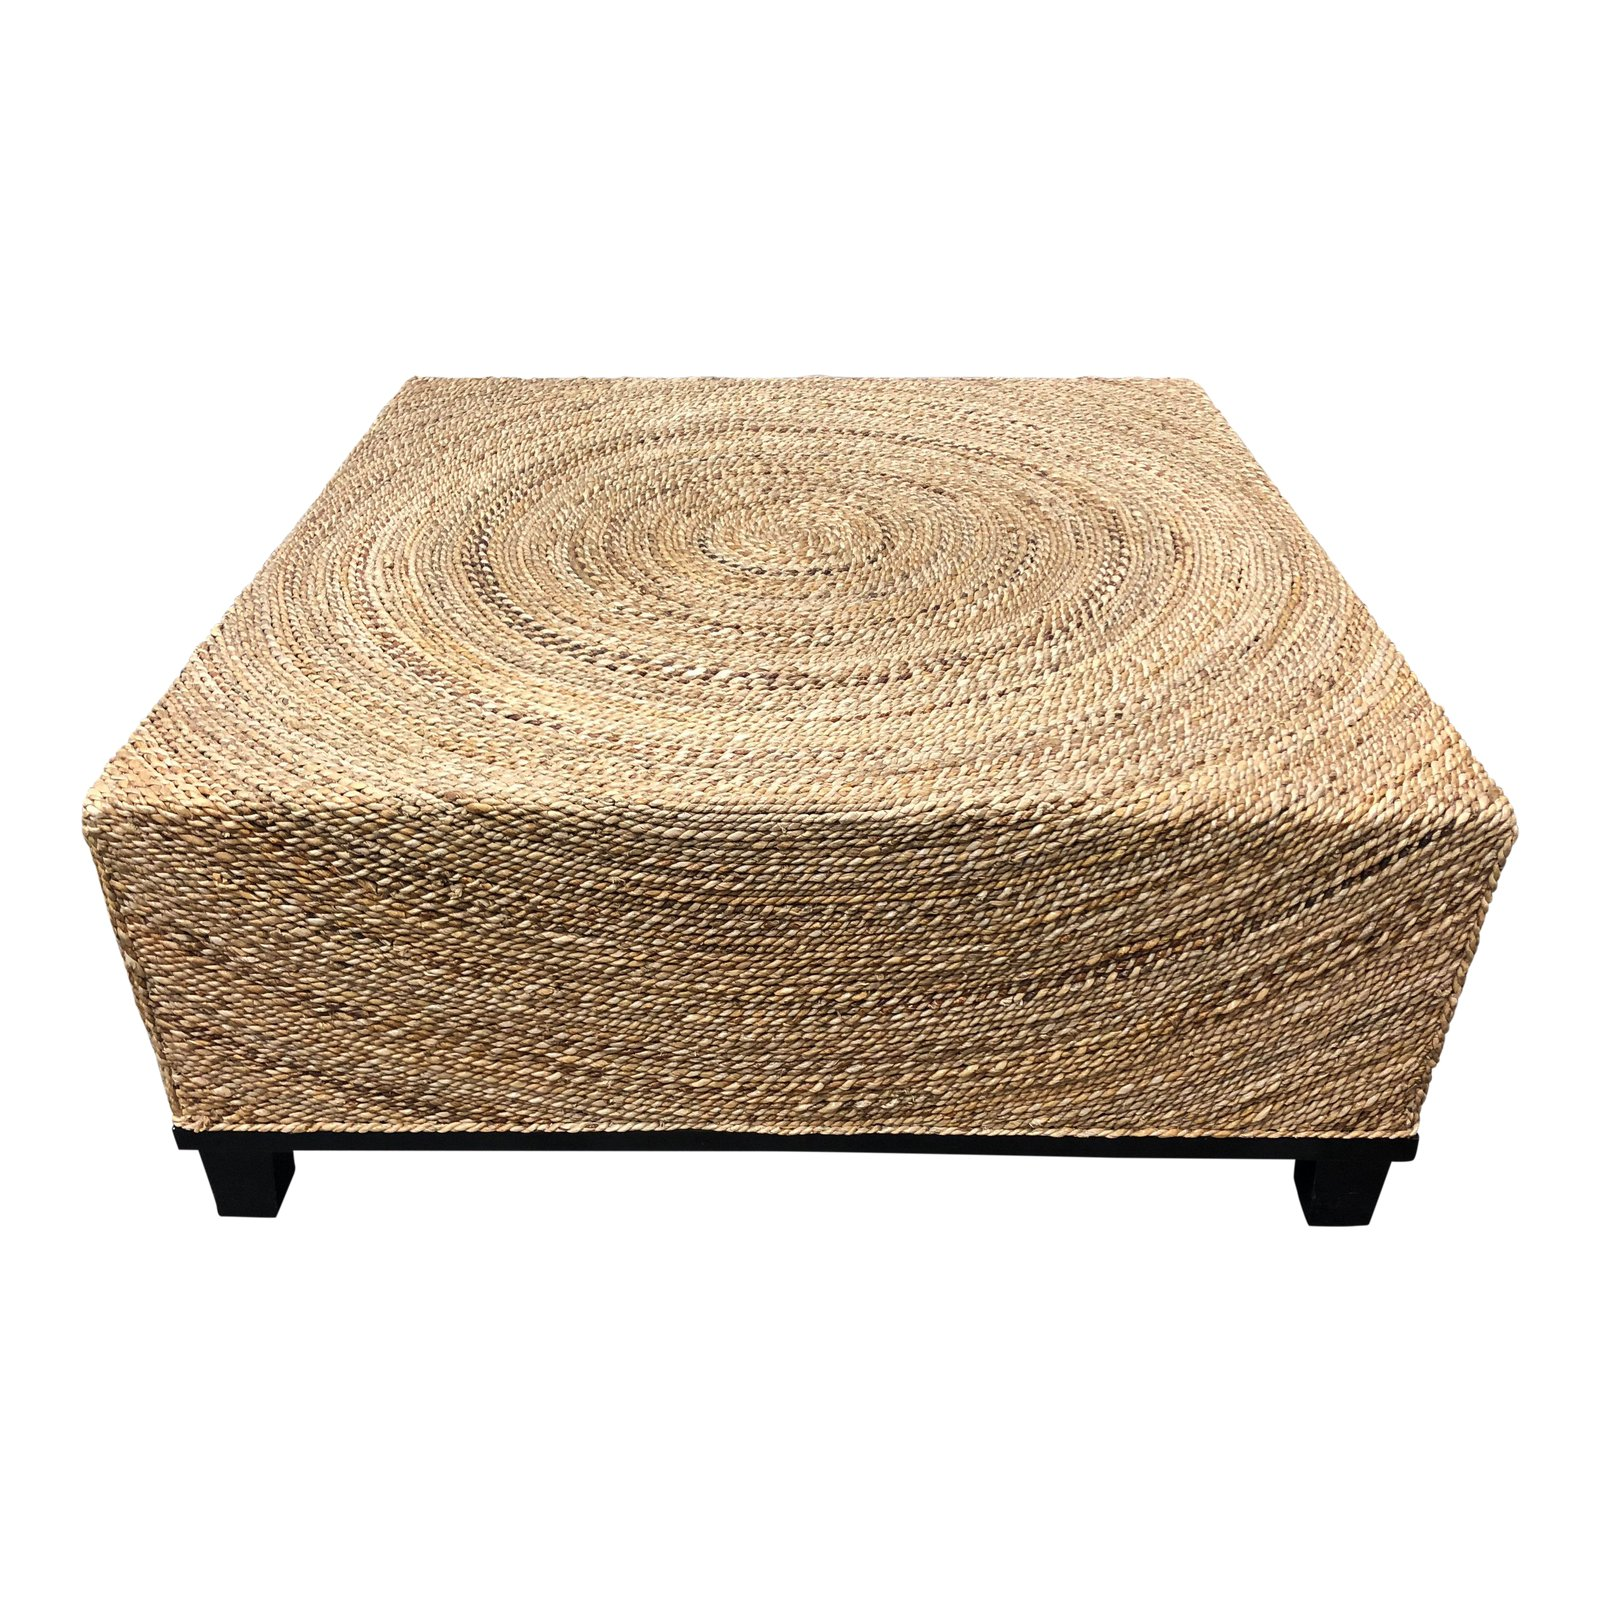 gallerie concetric coffee table design plus gallery concentric accent contemporary wood beach style lamps nautical dining pottery barn dresser ikea kitchen and chairs cotton